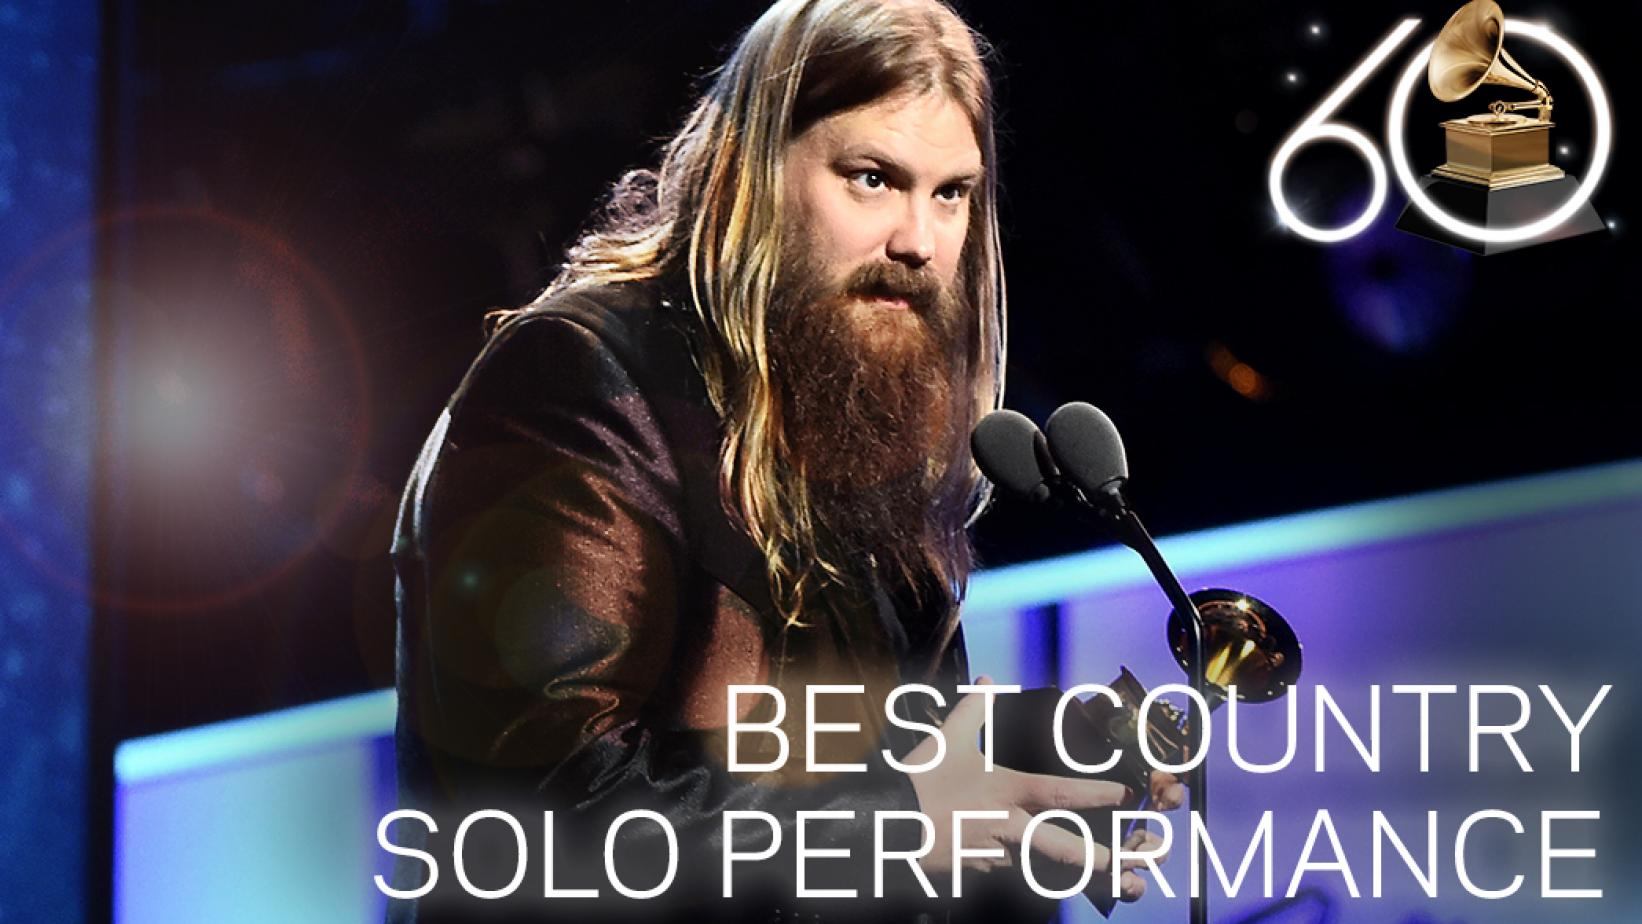 Chris Stapleton, 2018